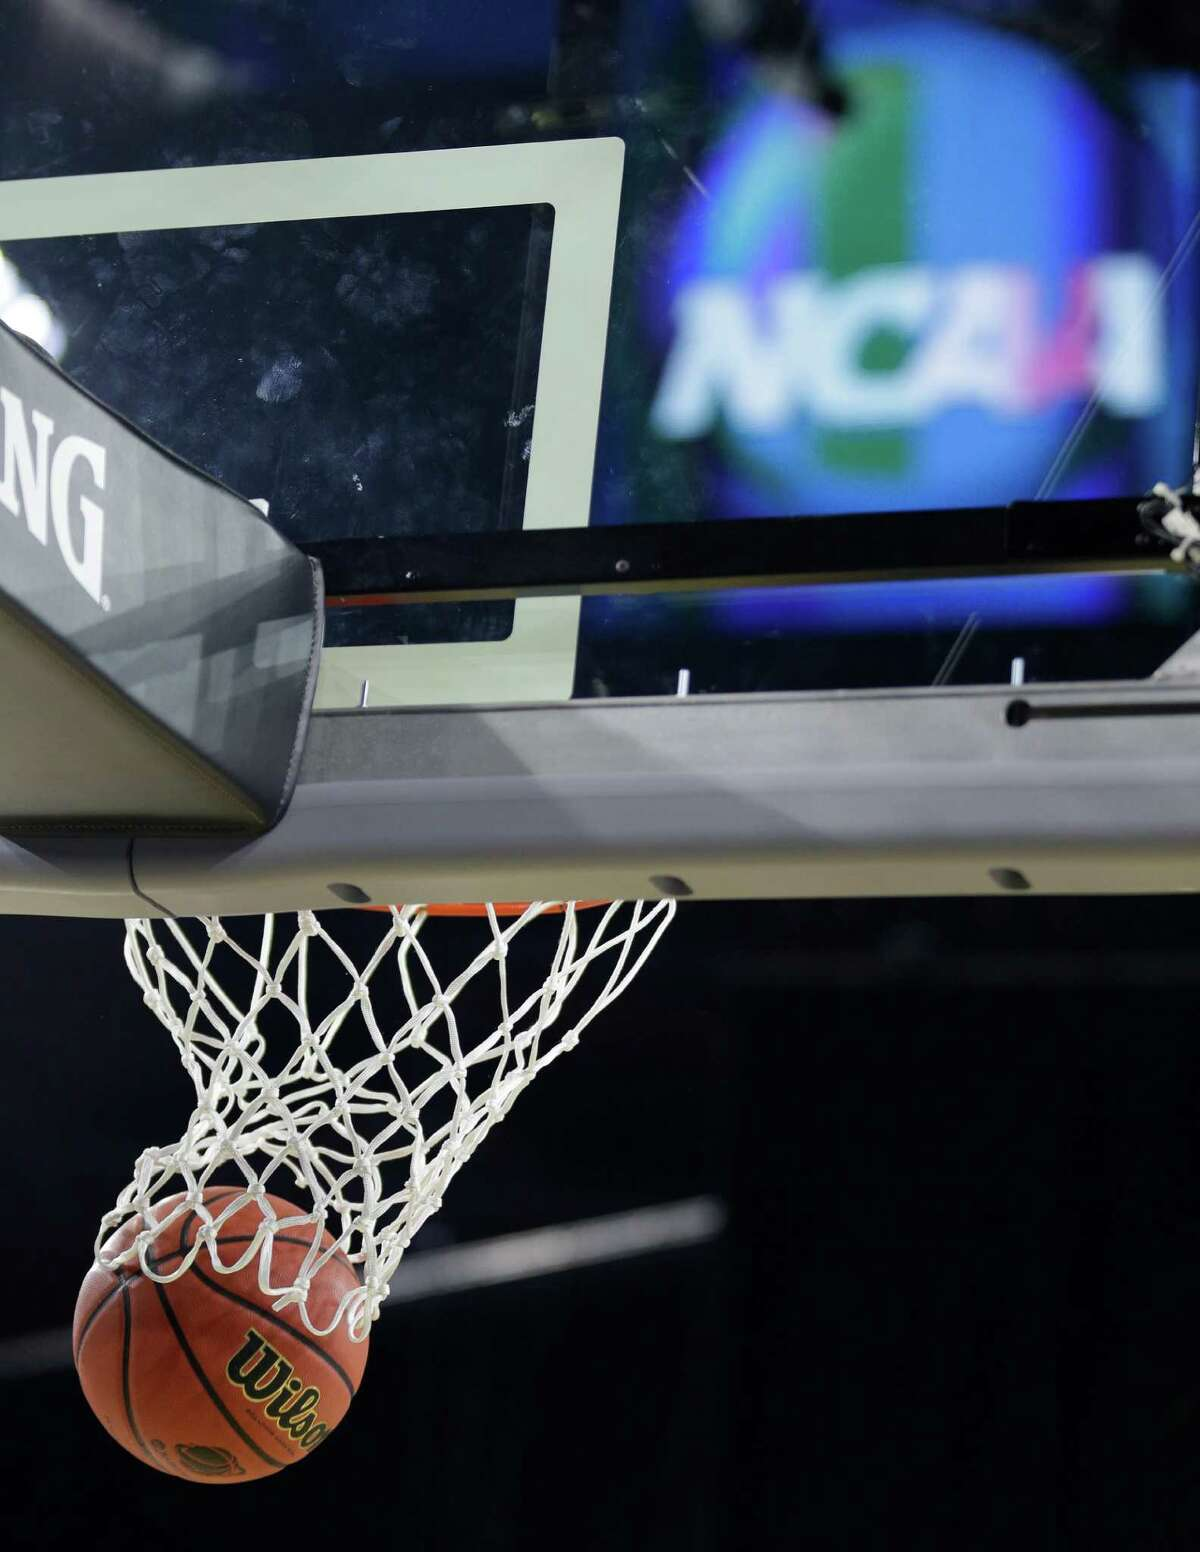 A basketball goes through the hoop during the Utah practice for the NCAA South Regional at NRG Stadium on Thursday, March 26, 2015, in Houston.